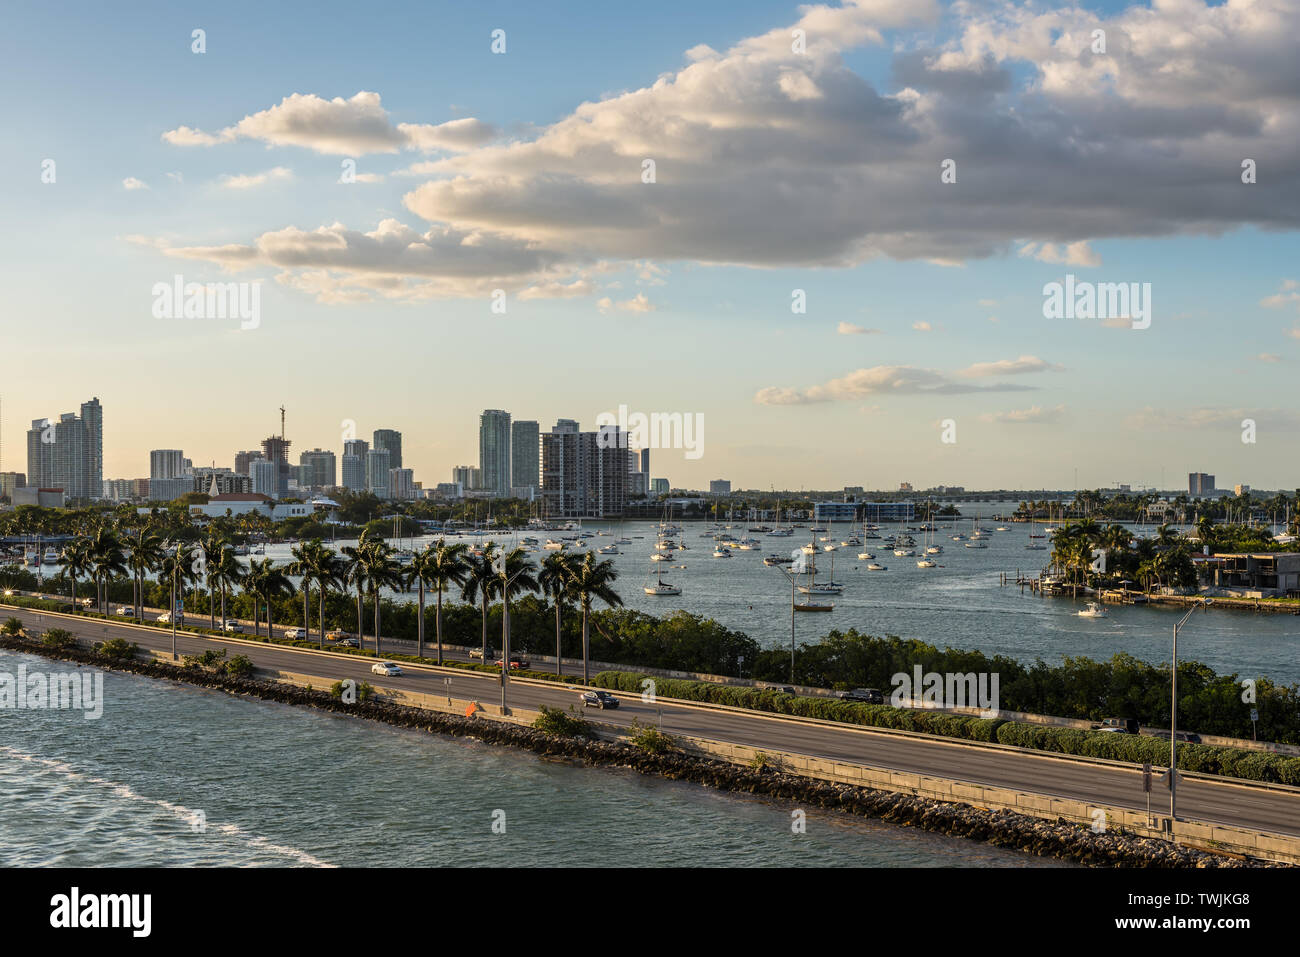 Miami, FL, United States - April 20, 2019:  View of MacArthur Causeway and Biscayne Bay in Miami, Florida, United States of America. Stock Photo